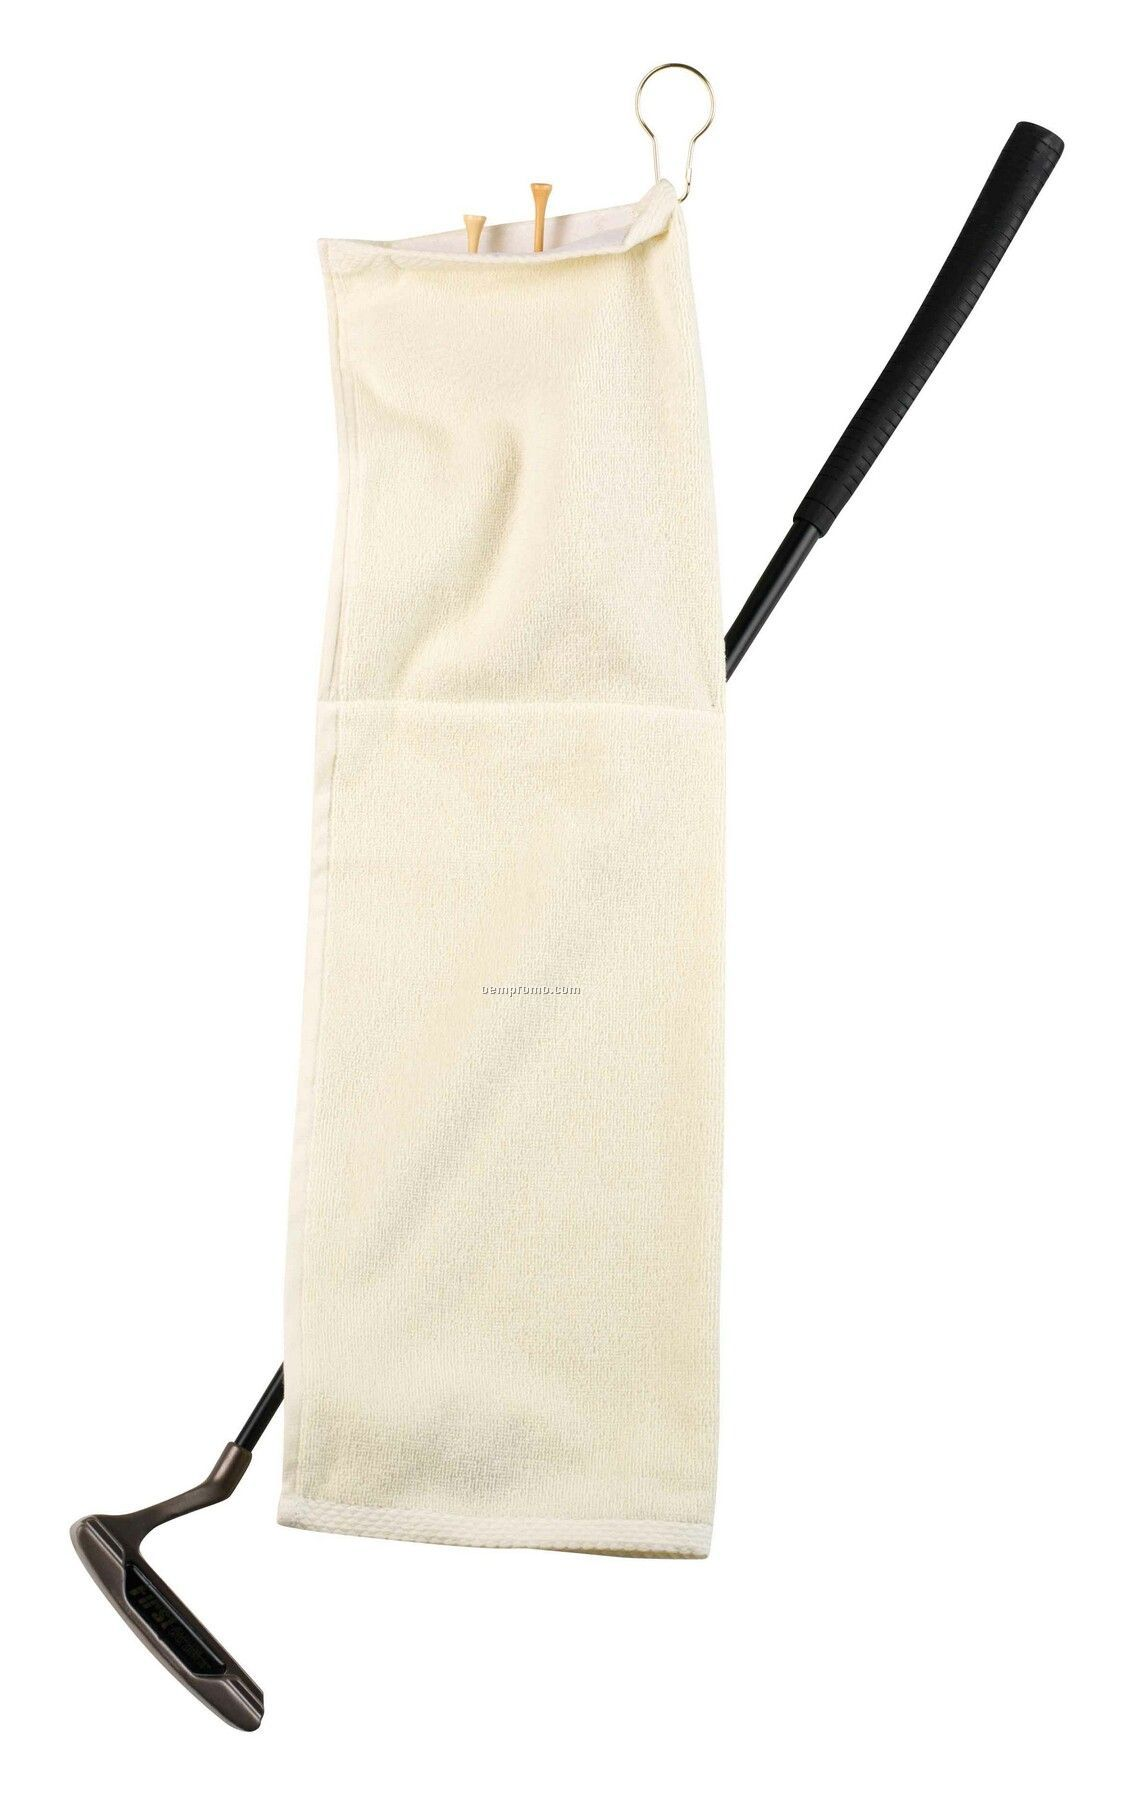 The Turnberry Pouch Golf Towel With Hook & Grommet